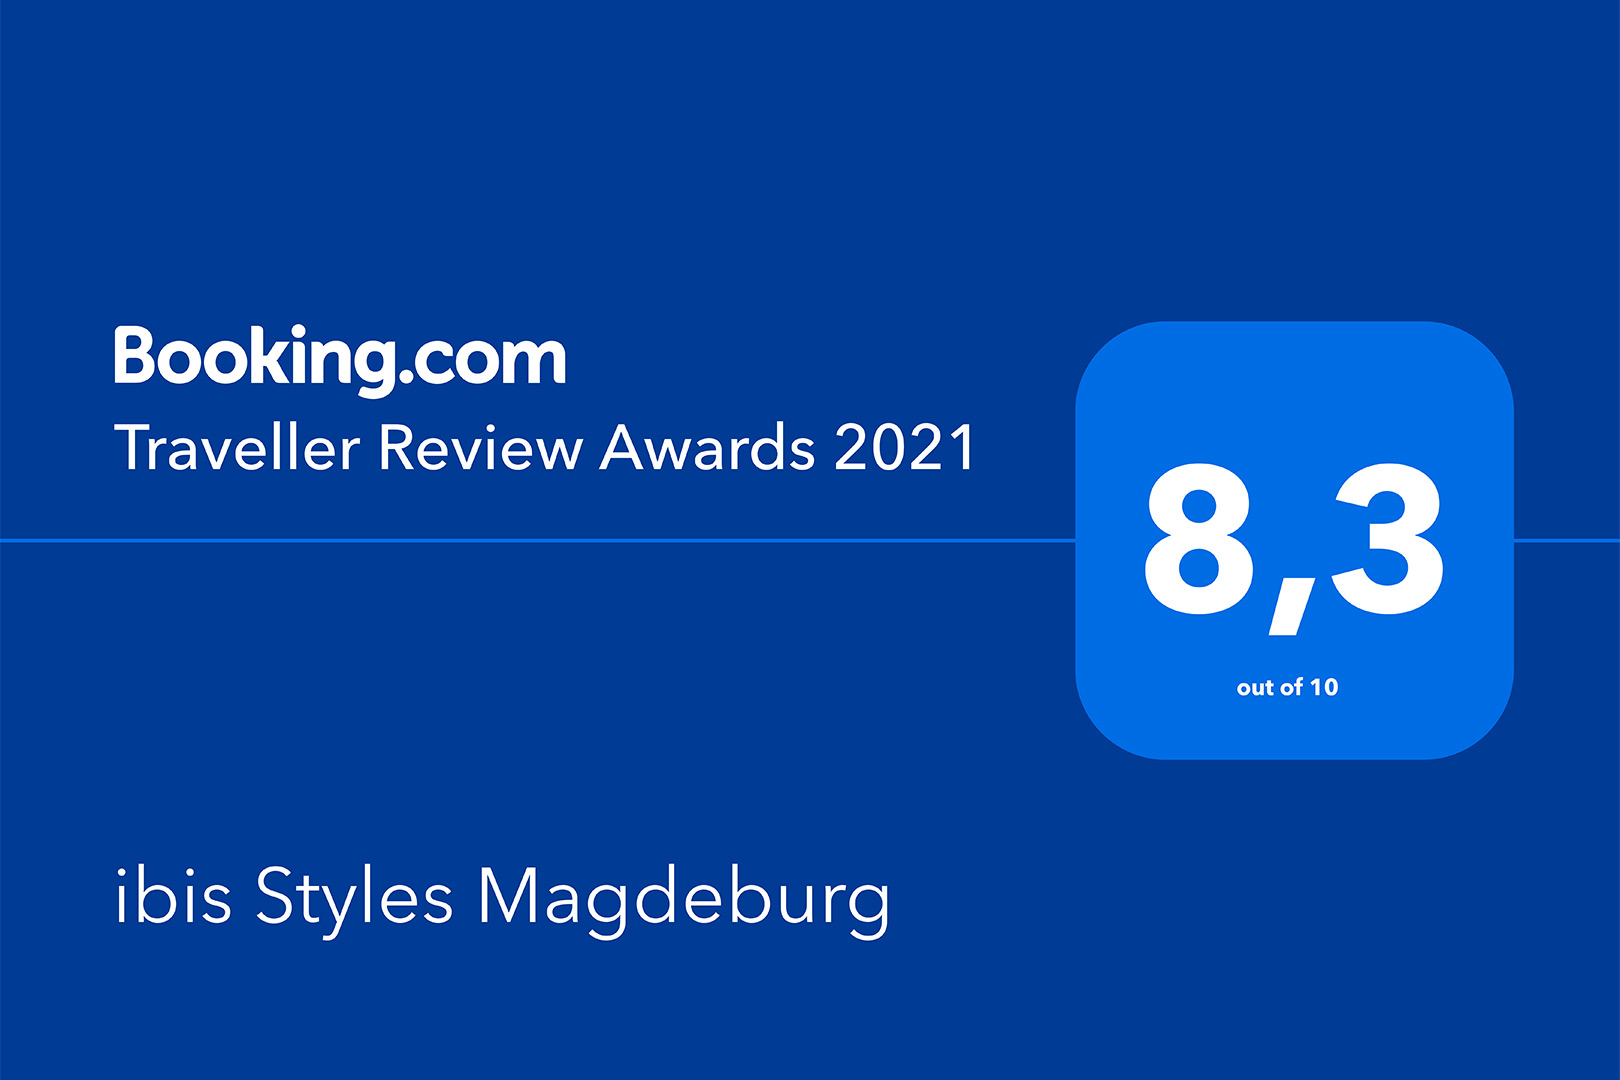 ibis Styles Magdeburg - Traveller Review Award 2021